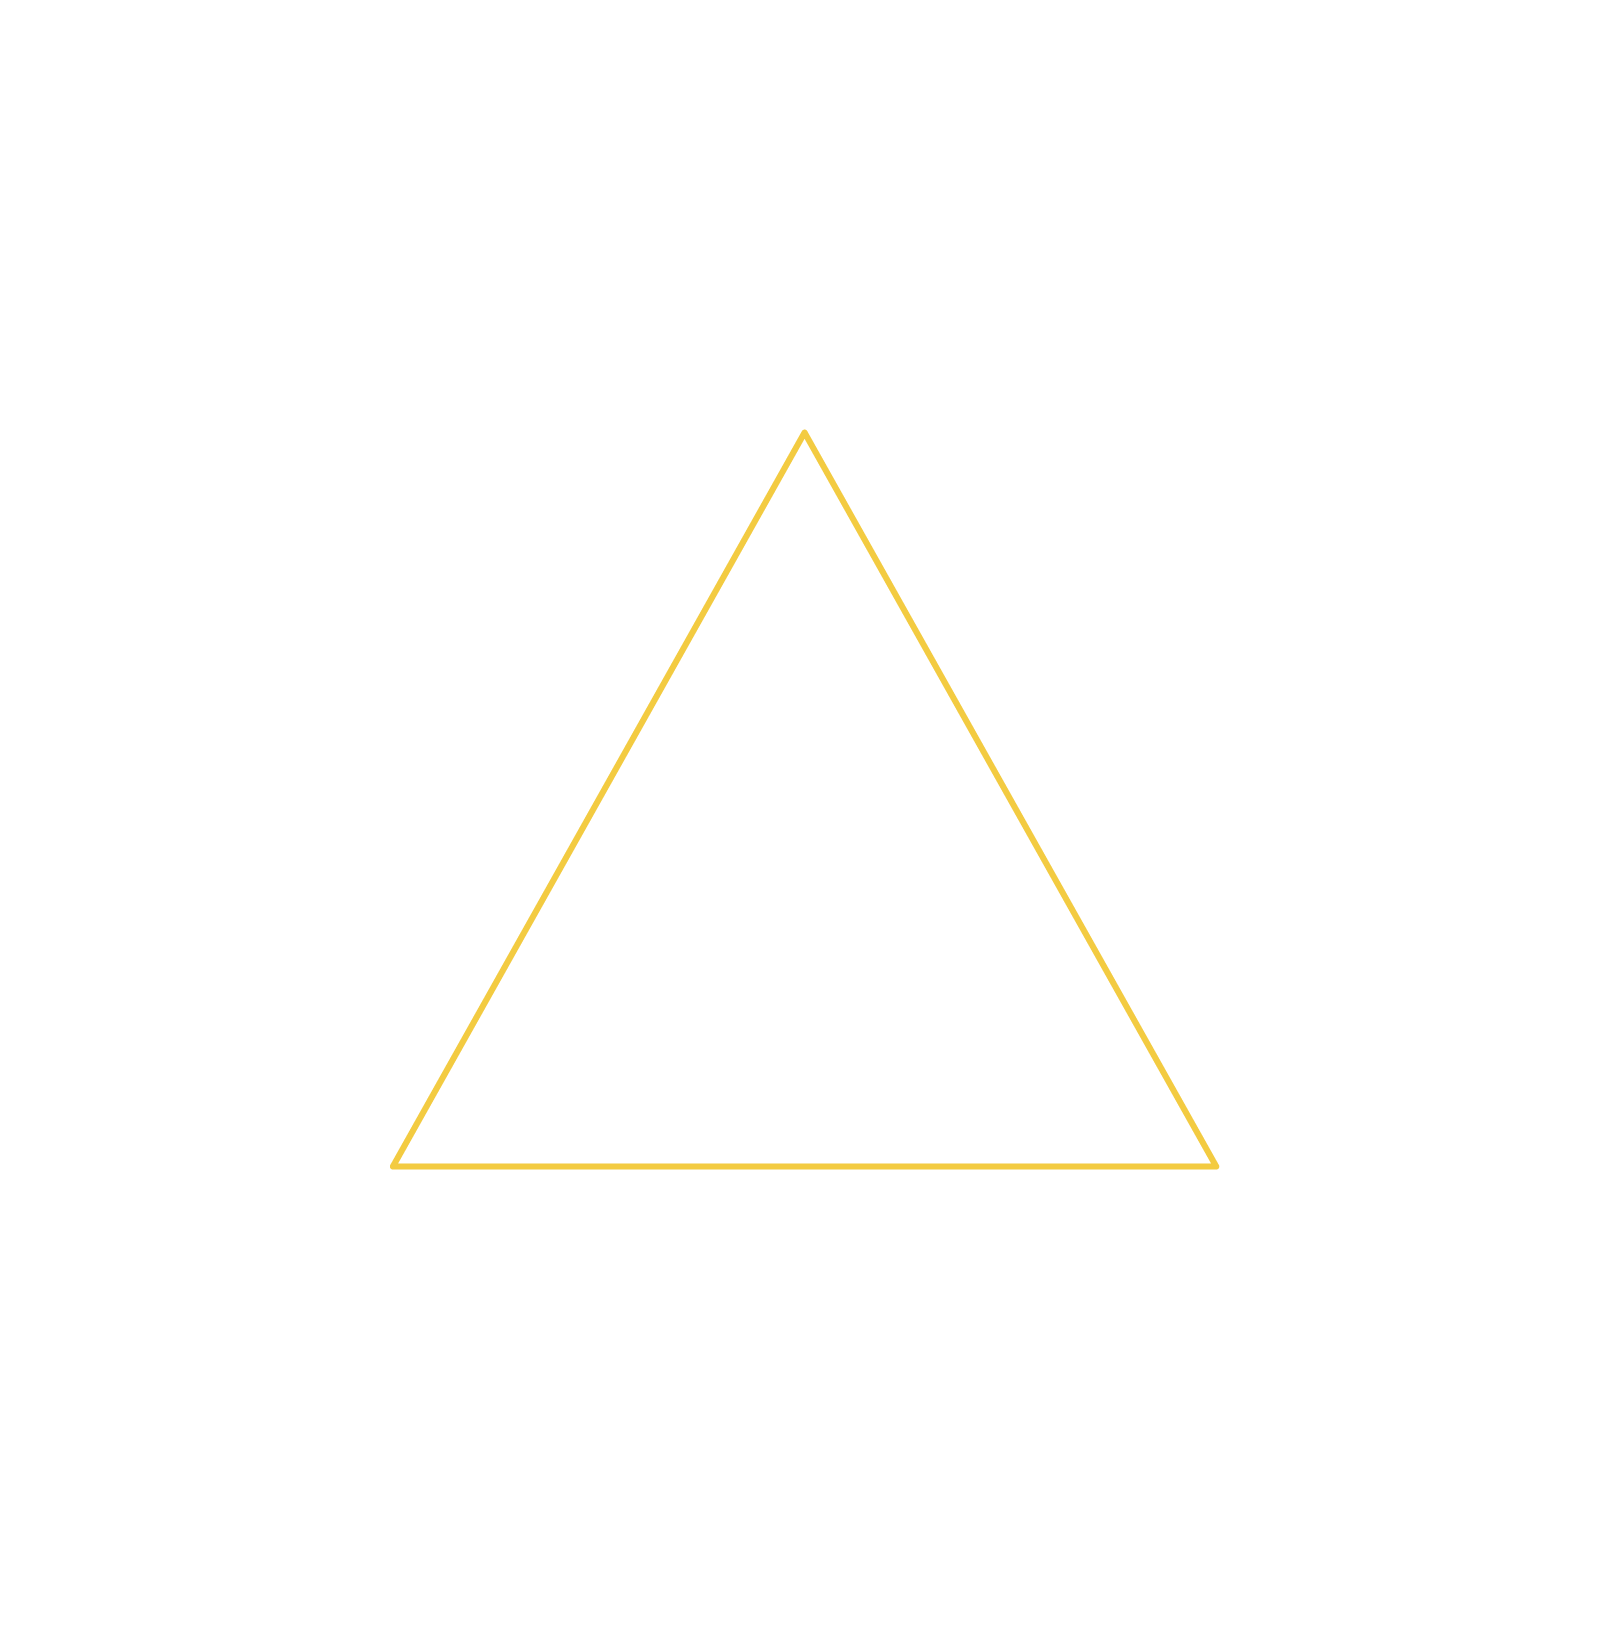 Gold Triangle (1 of 3)